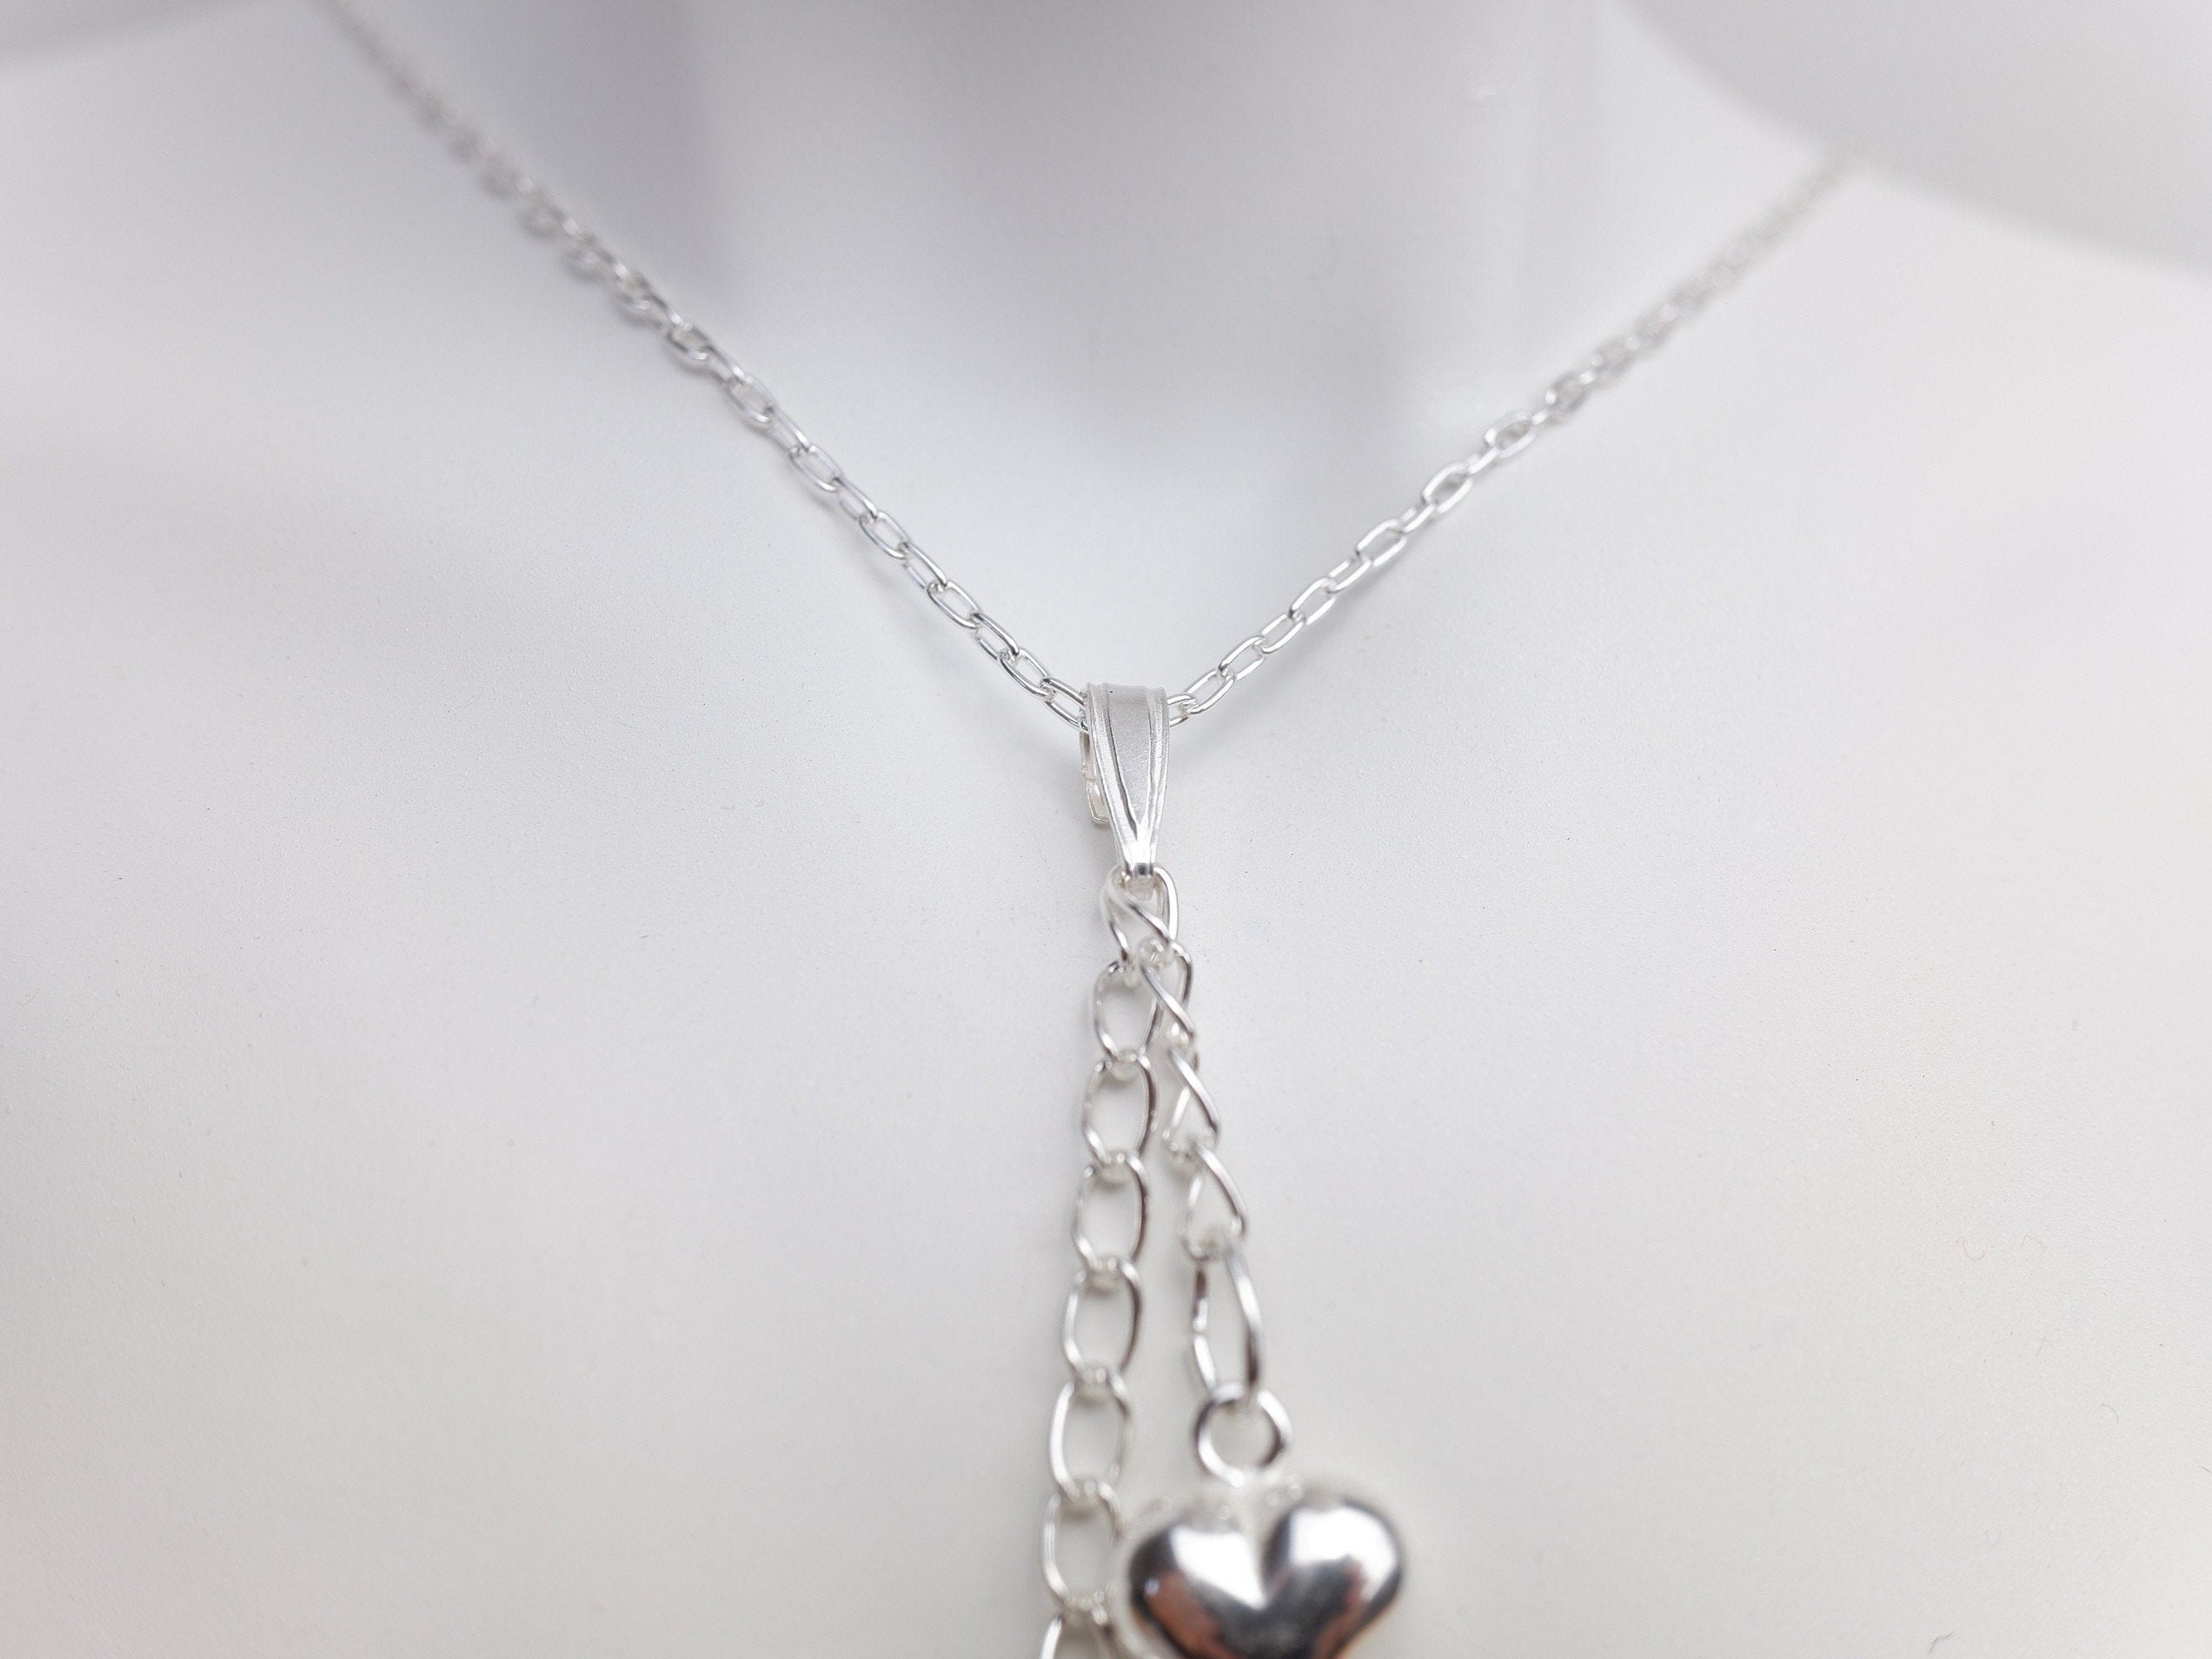 Sterling Silver Double Puffed Heart Charm Pendant Necklace - Sterling Silver Cable Chain - Minimalist Jewellery